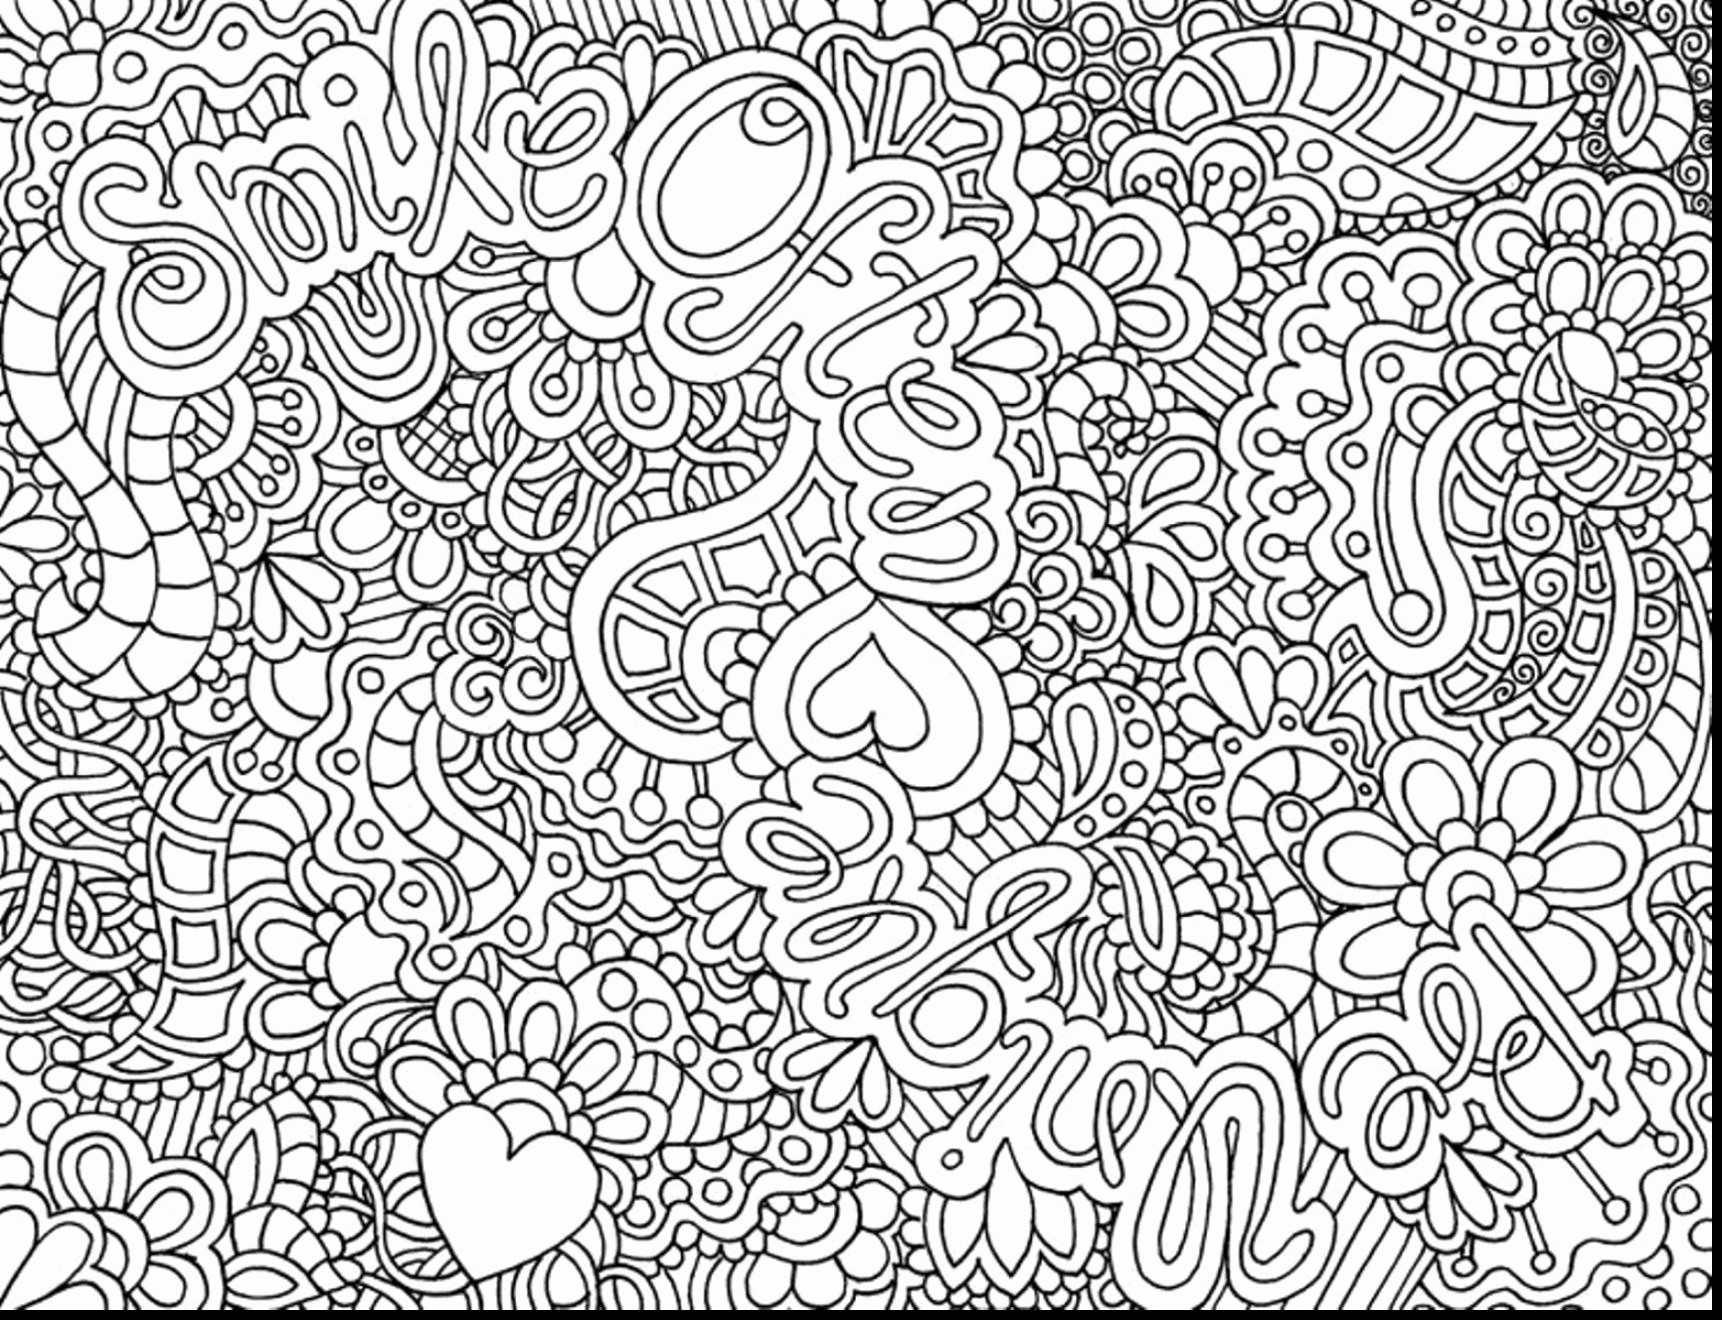 Unique Coloring Pages For Adults At Getdrawings Com Free